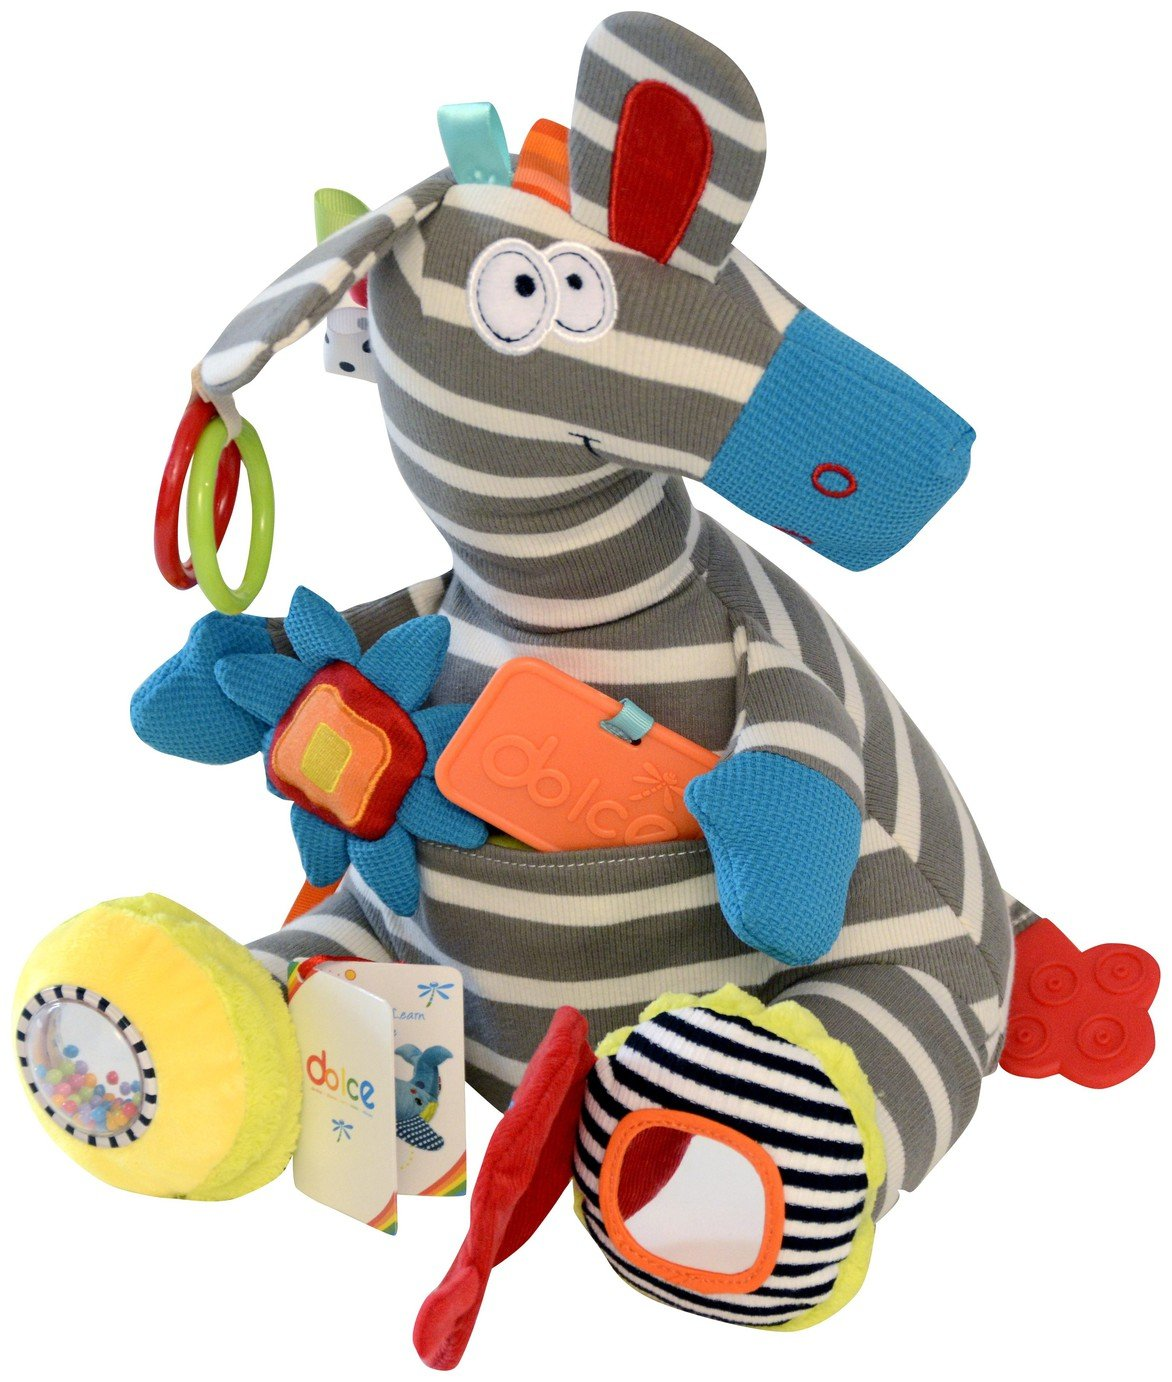 Dolce Activity Zebra